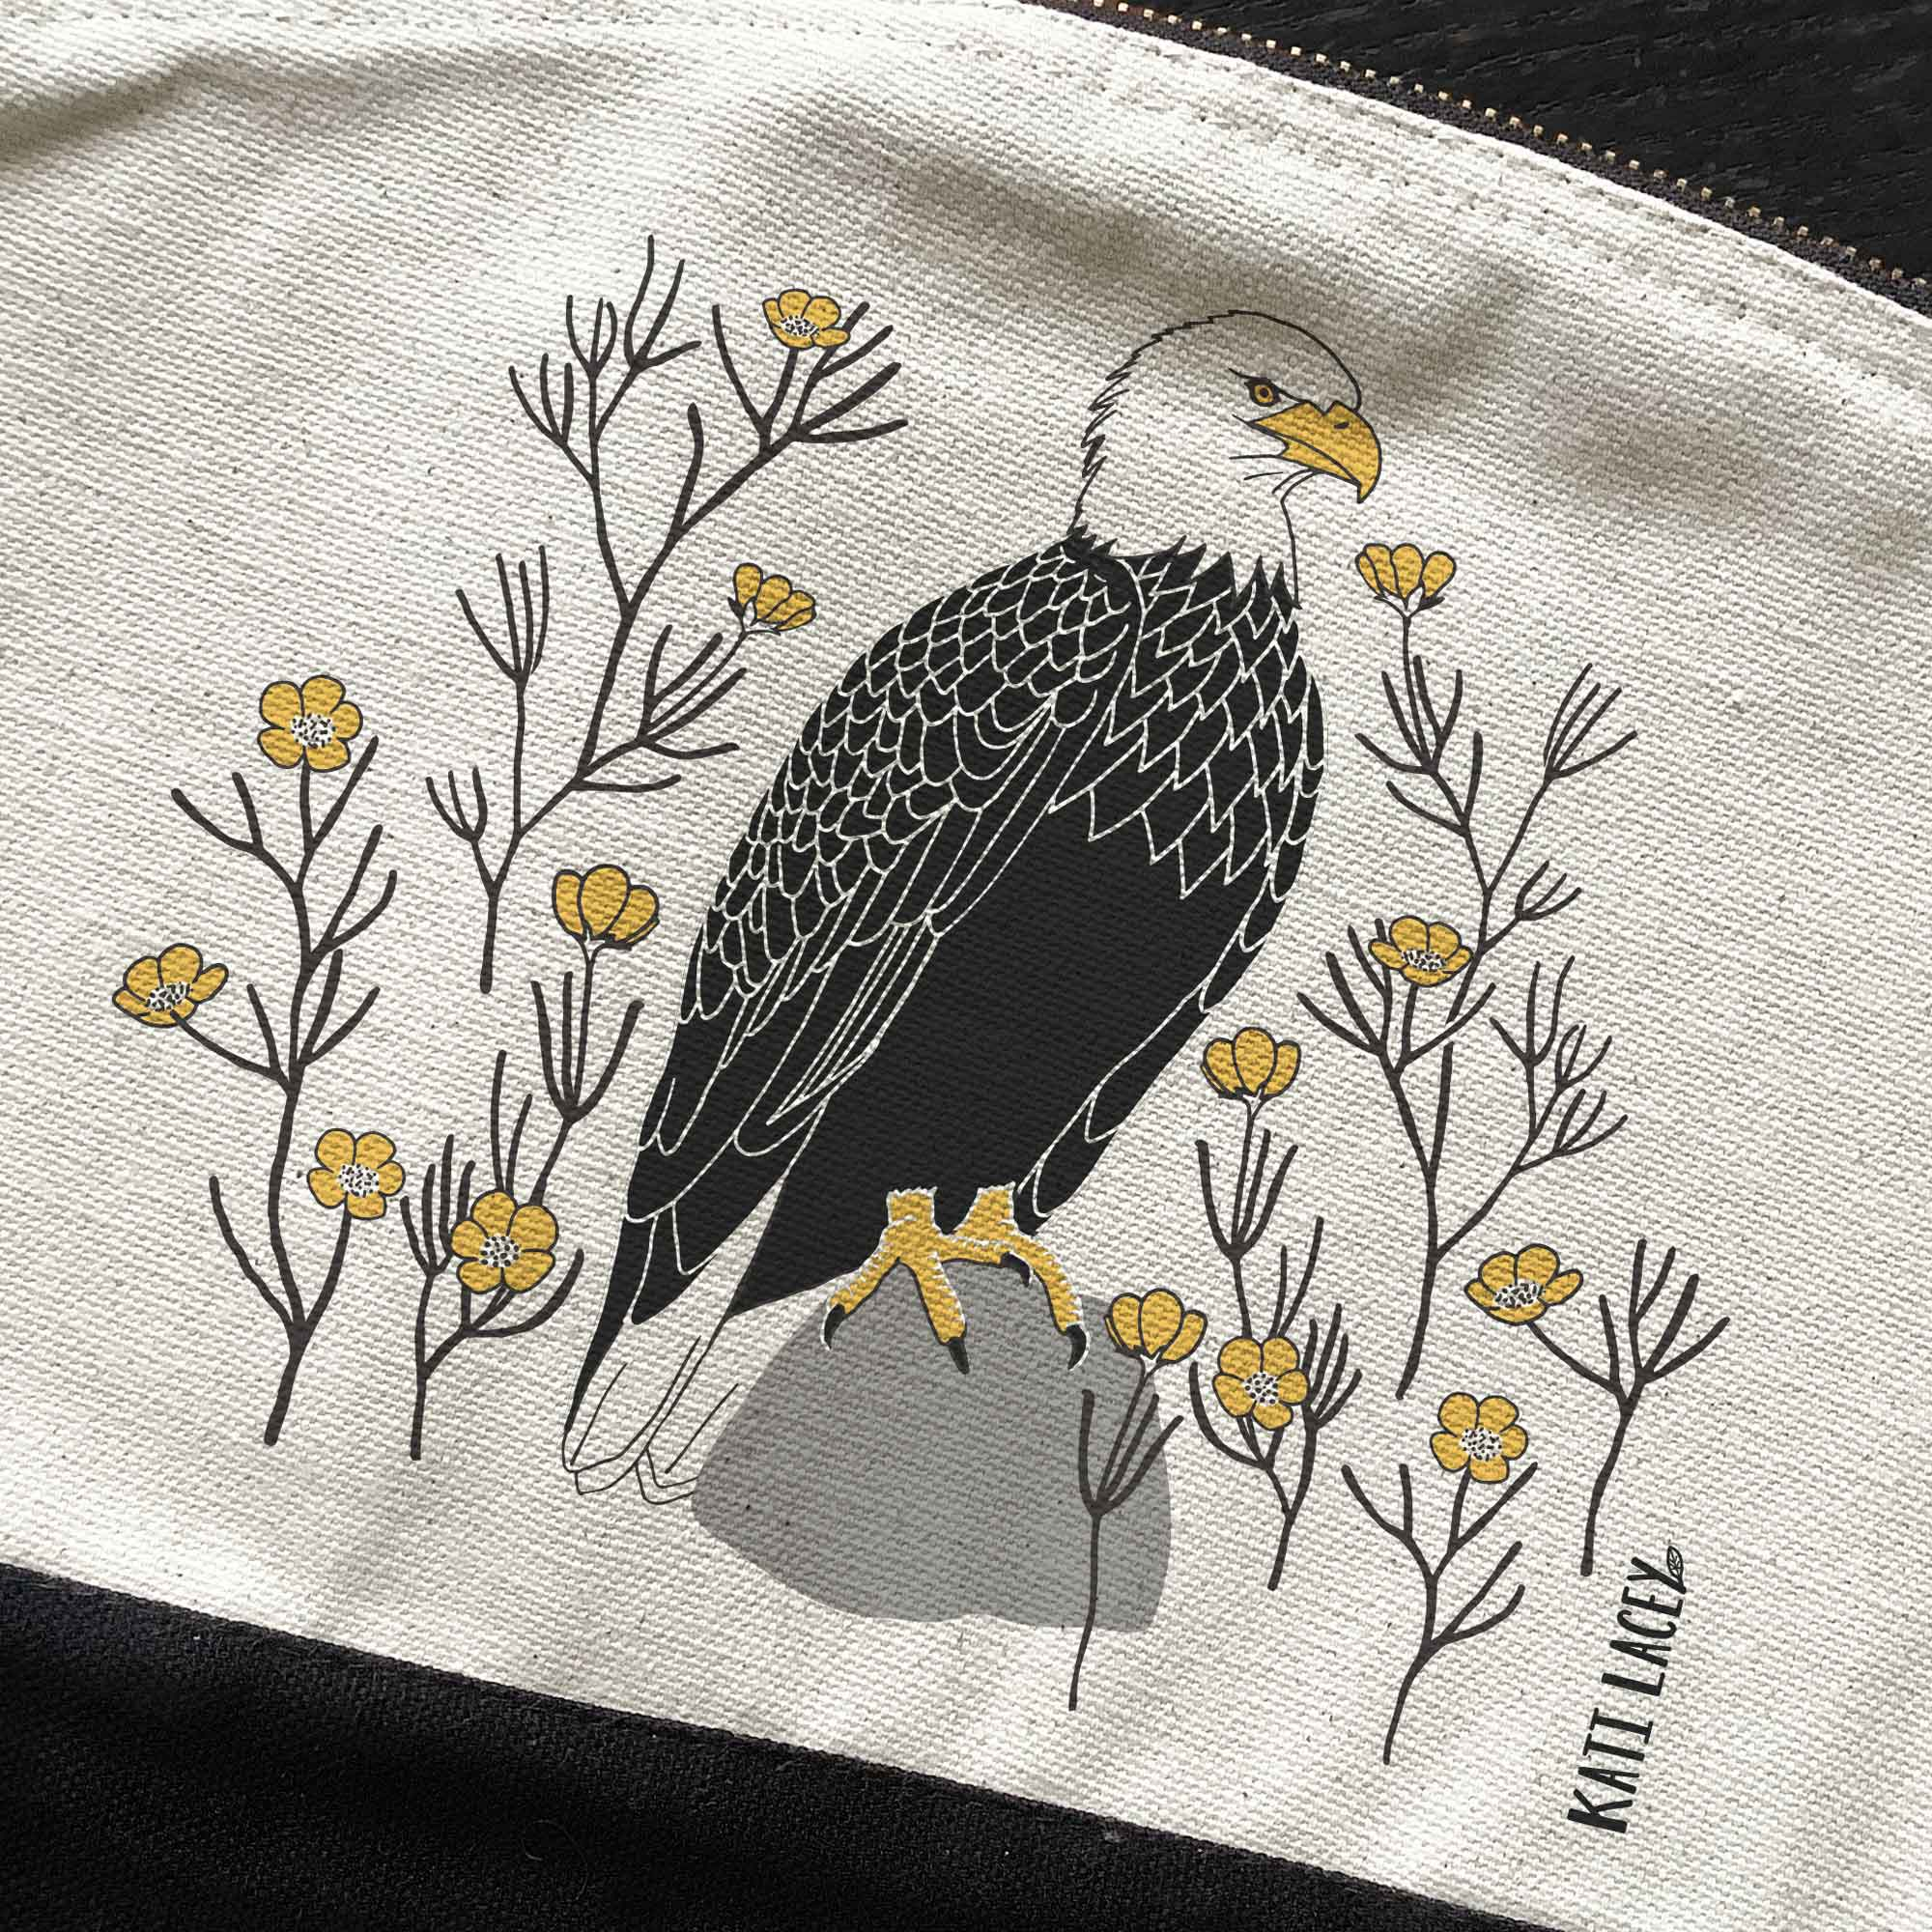 Bald eagle-White Eagle- on pouch-washbag-toiletry bag-pencil case-make up bag-storage bag for travel-medication bag-pouch-luxury-eco-friendly cotton-sustainable